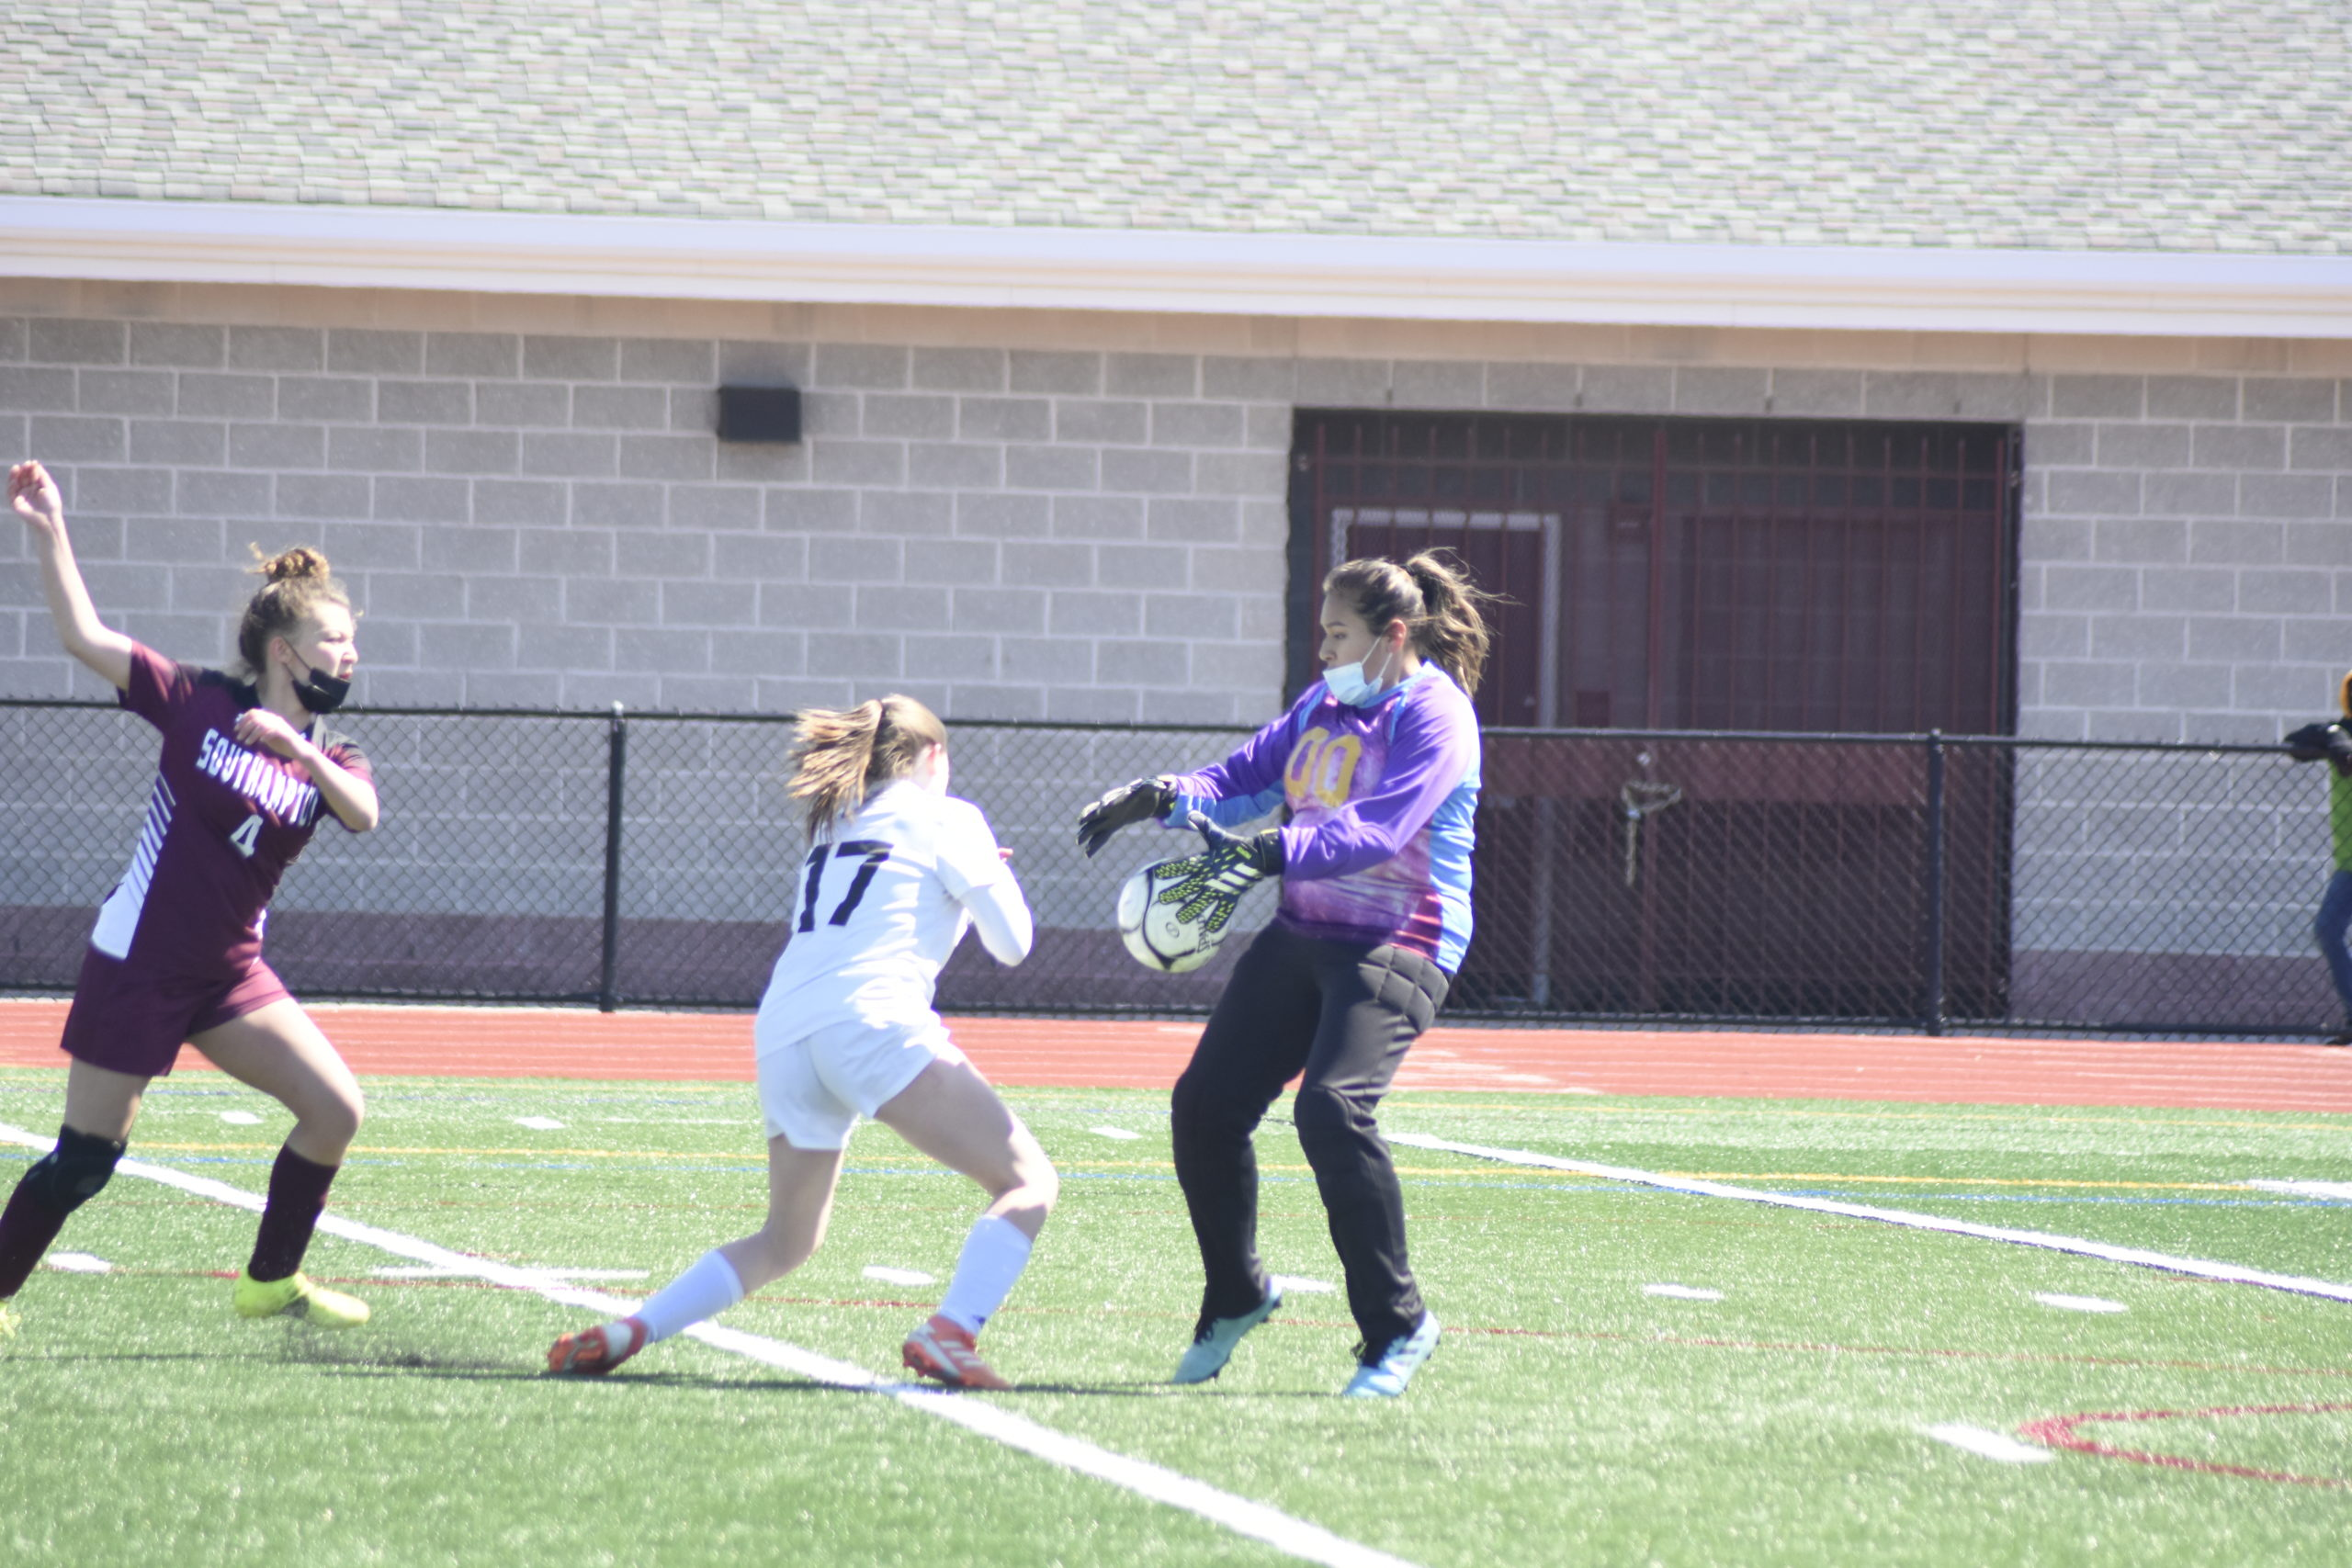 Southampton senior goalie Kendra Jimenez comes out to play a loose ball in the box before a Babylon player gets to it.